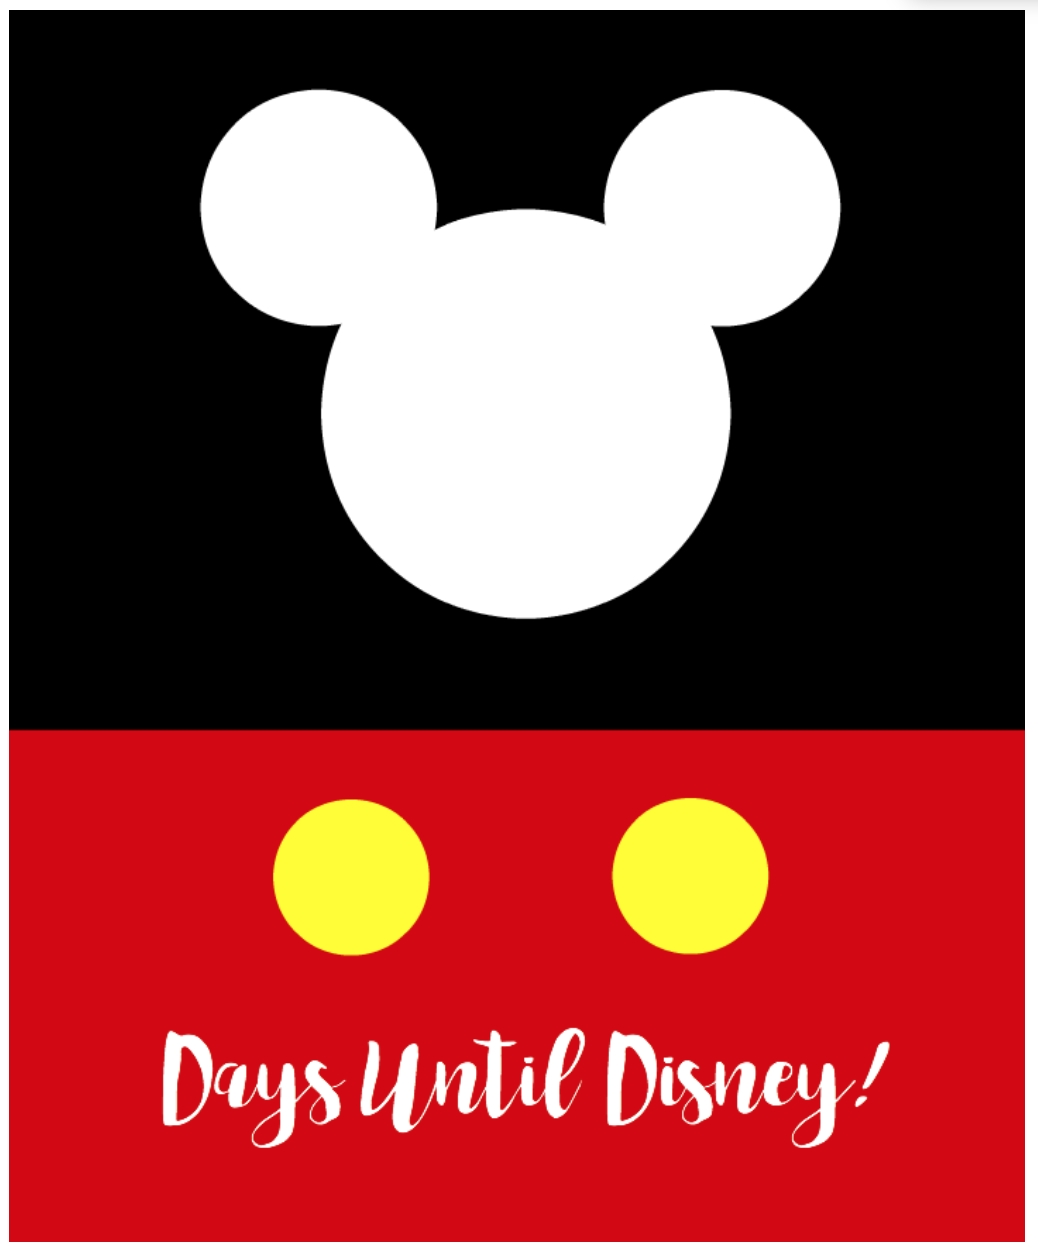 Days Until Disney Printable | Simply Being Mommy Dashing Countdown To Disney World Trip